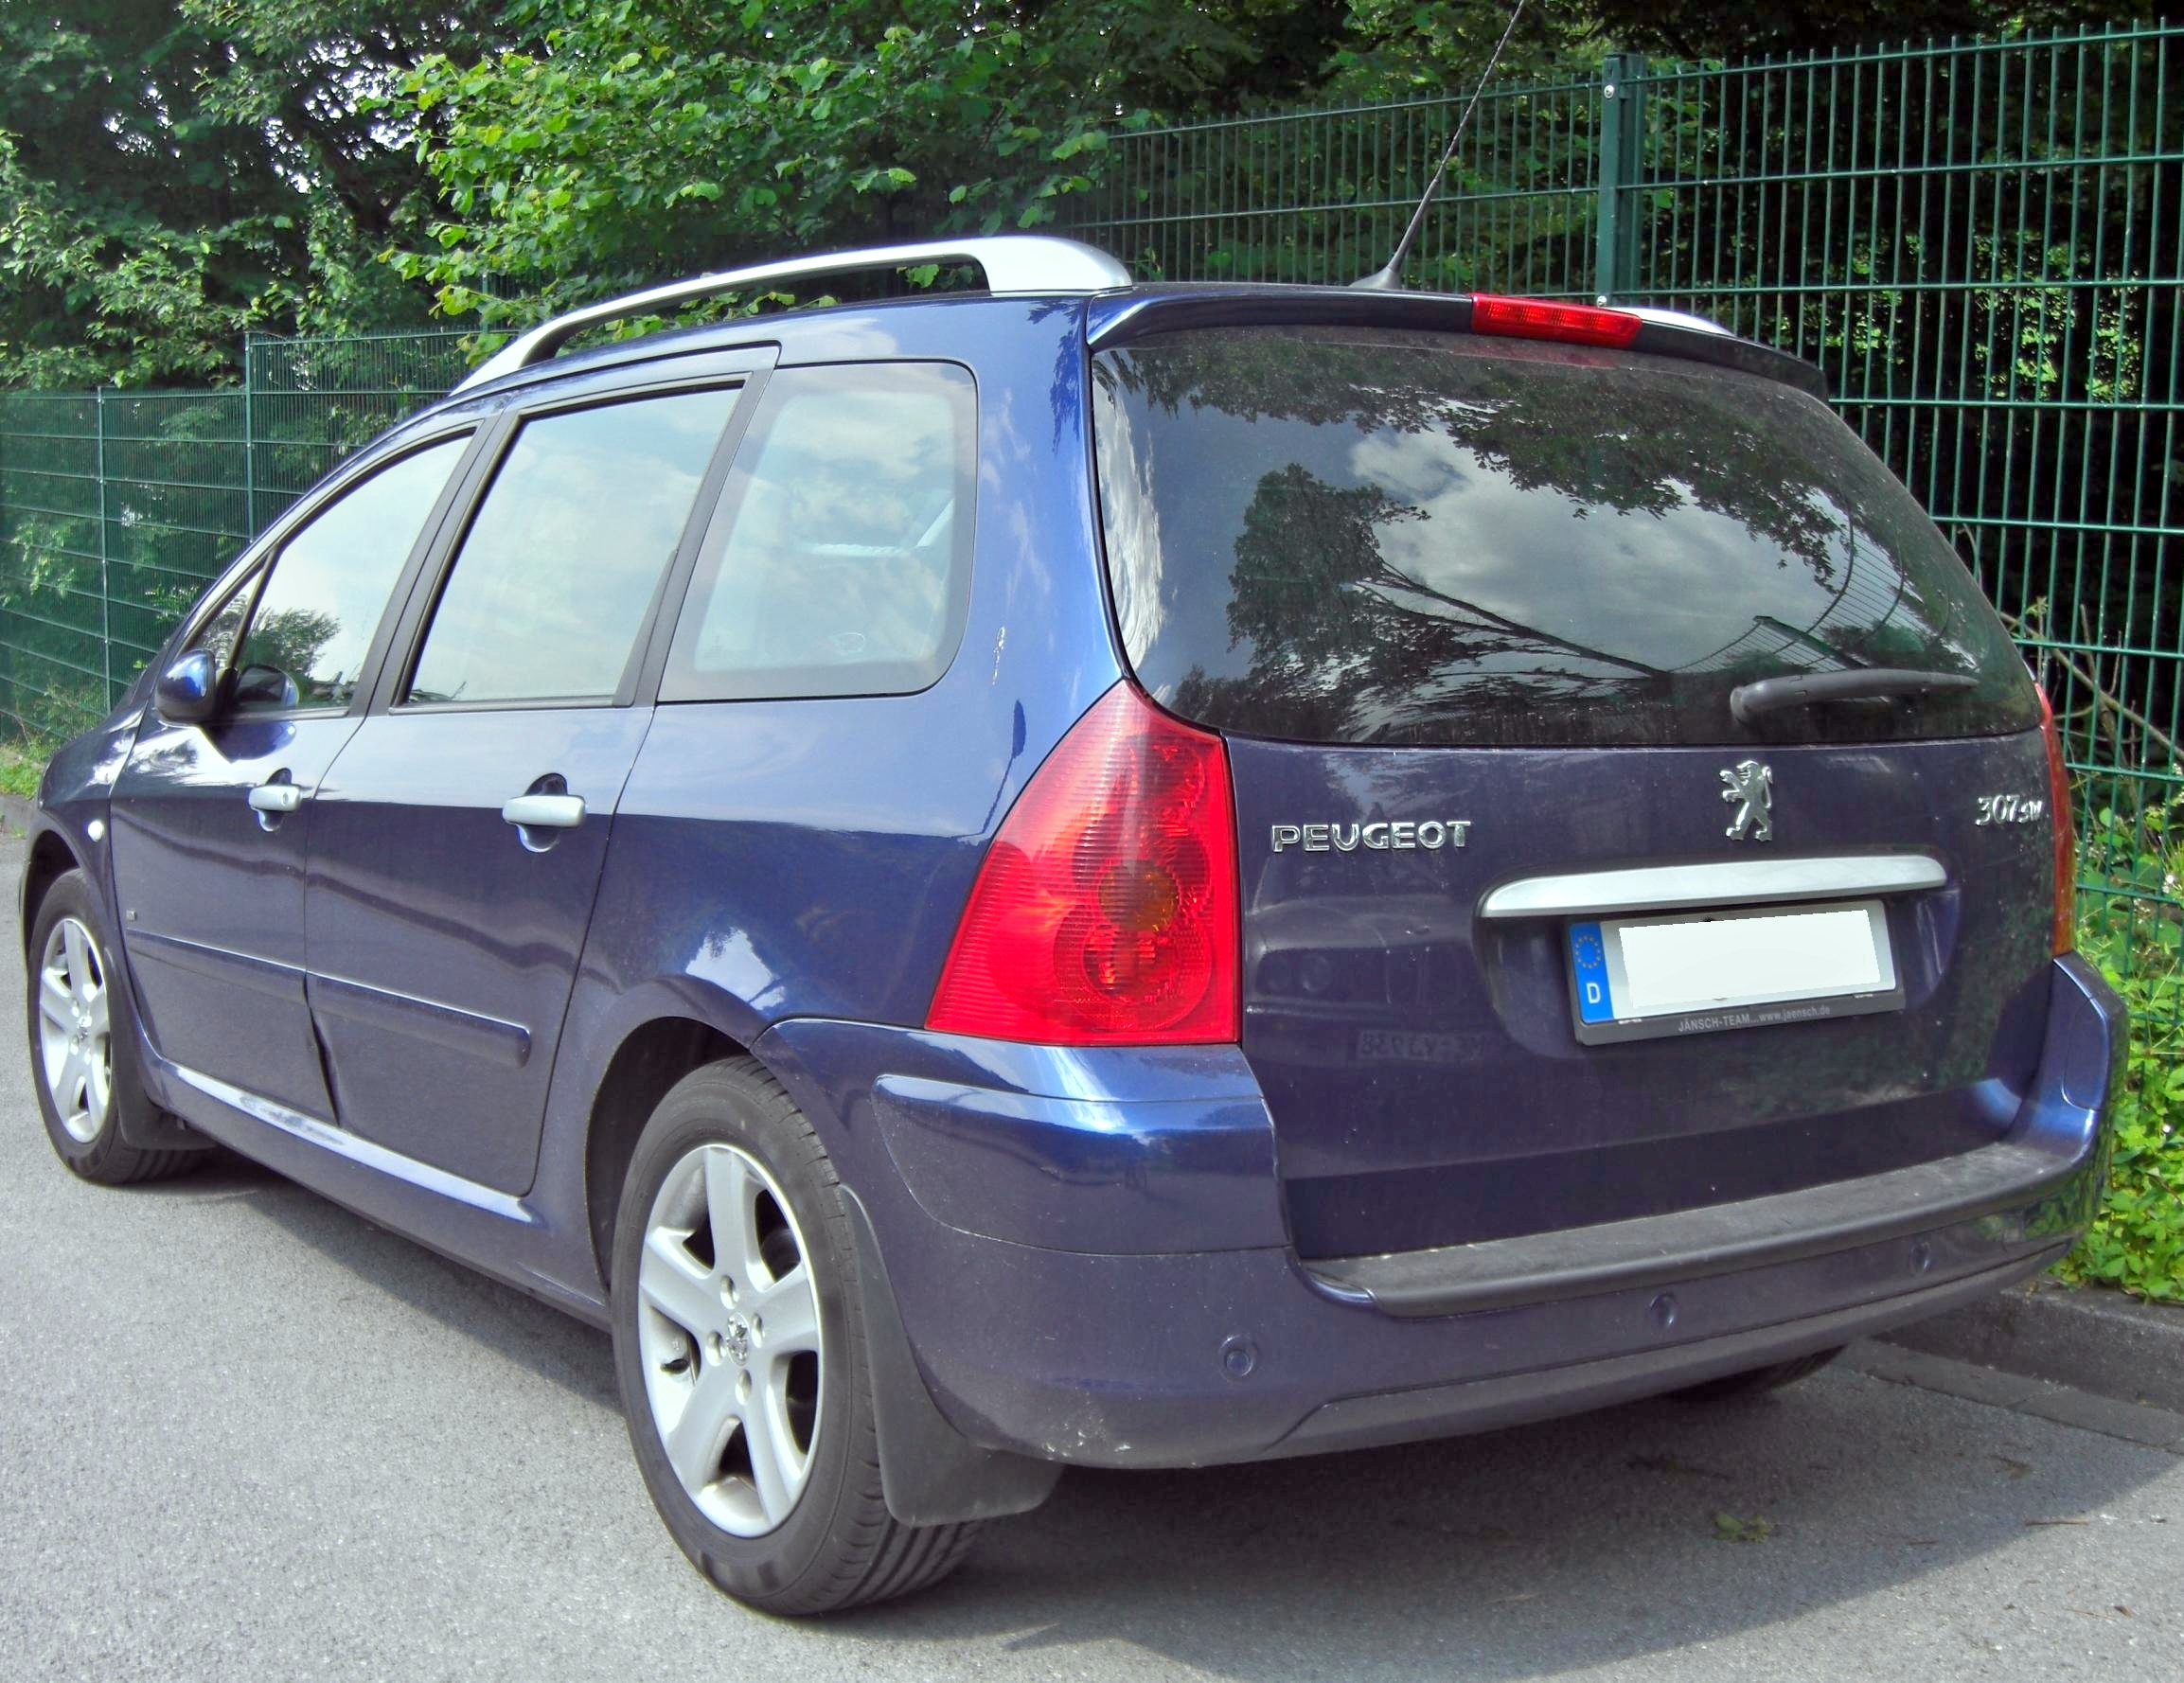 file peugeot 307 sw rear jpg wikimedia commons